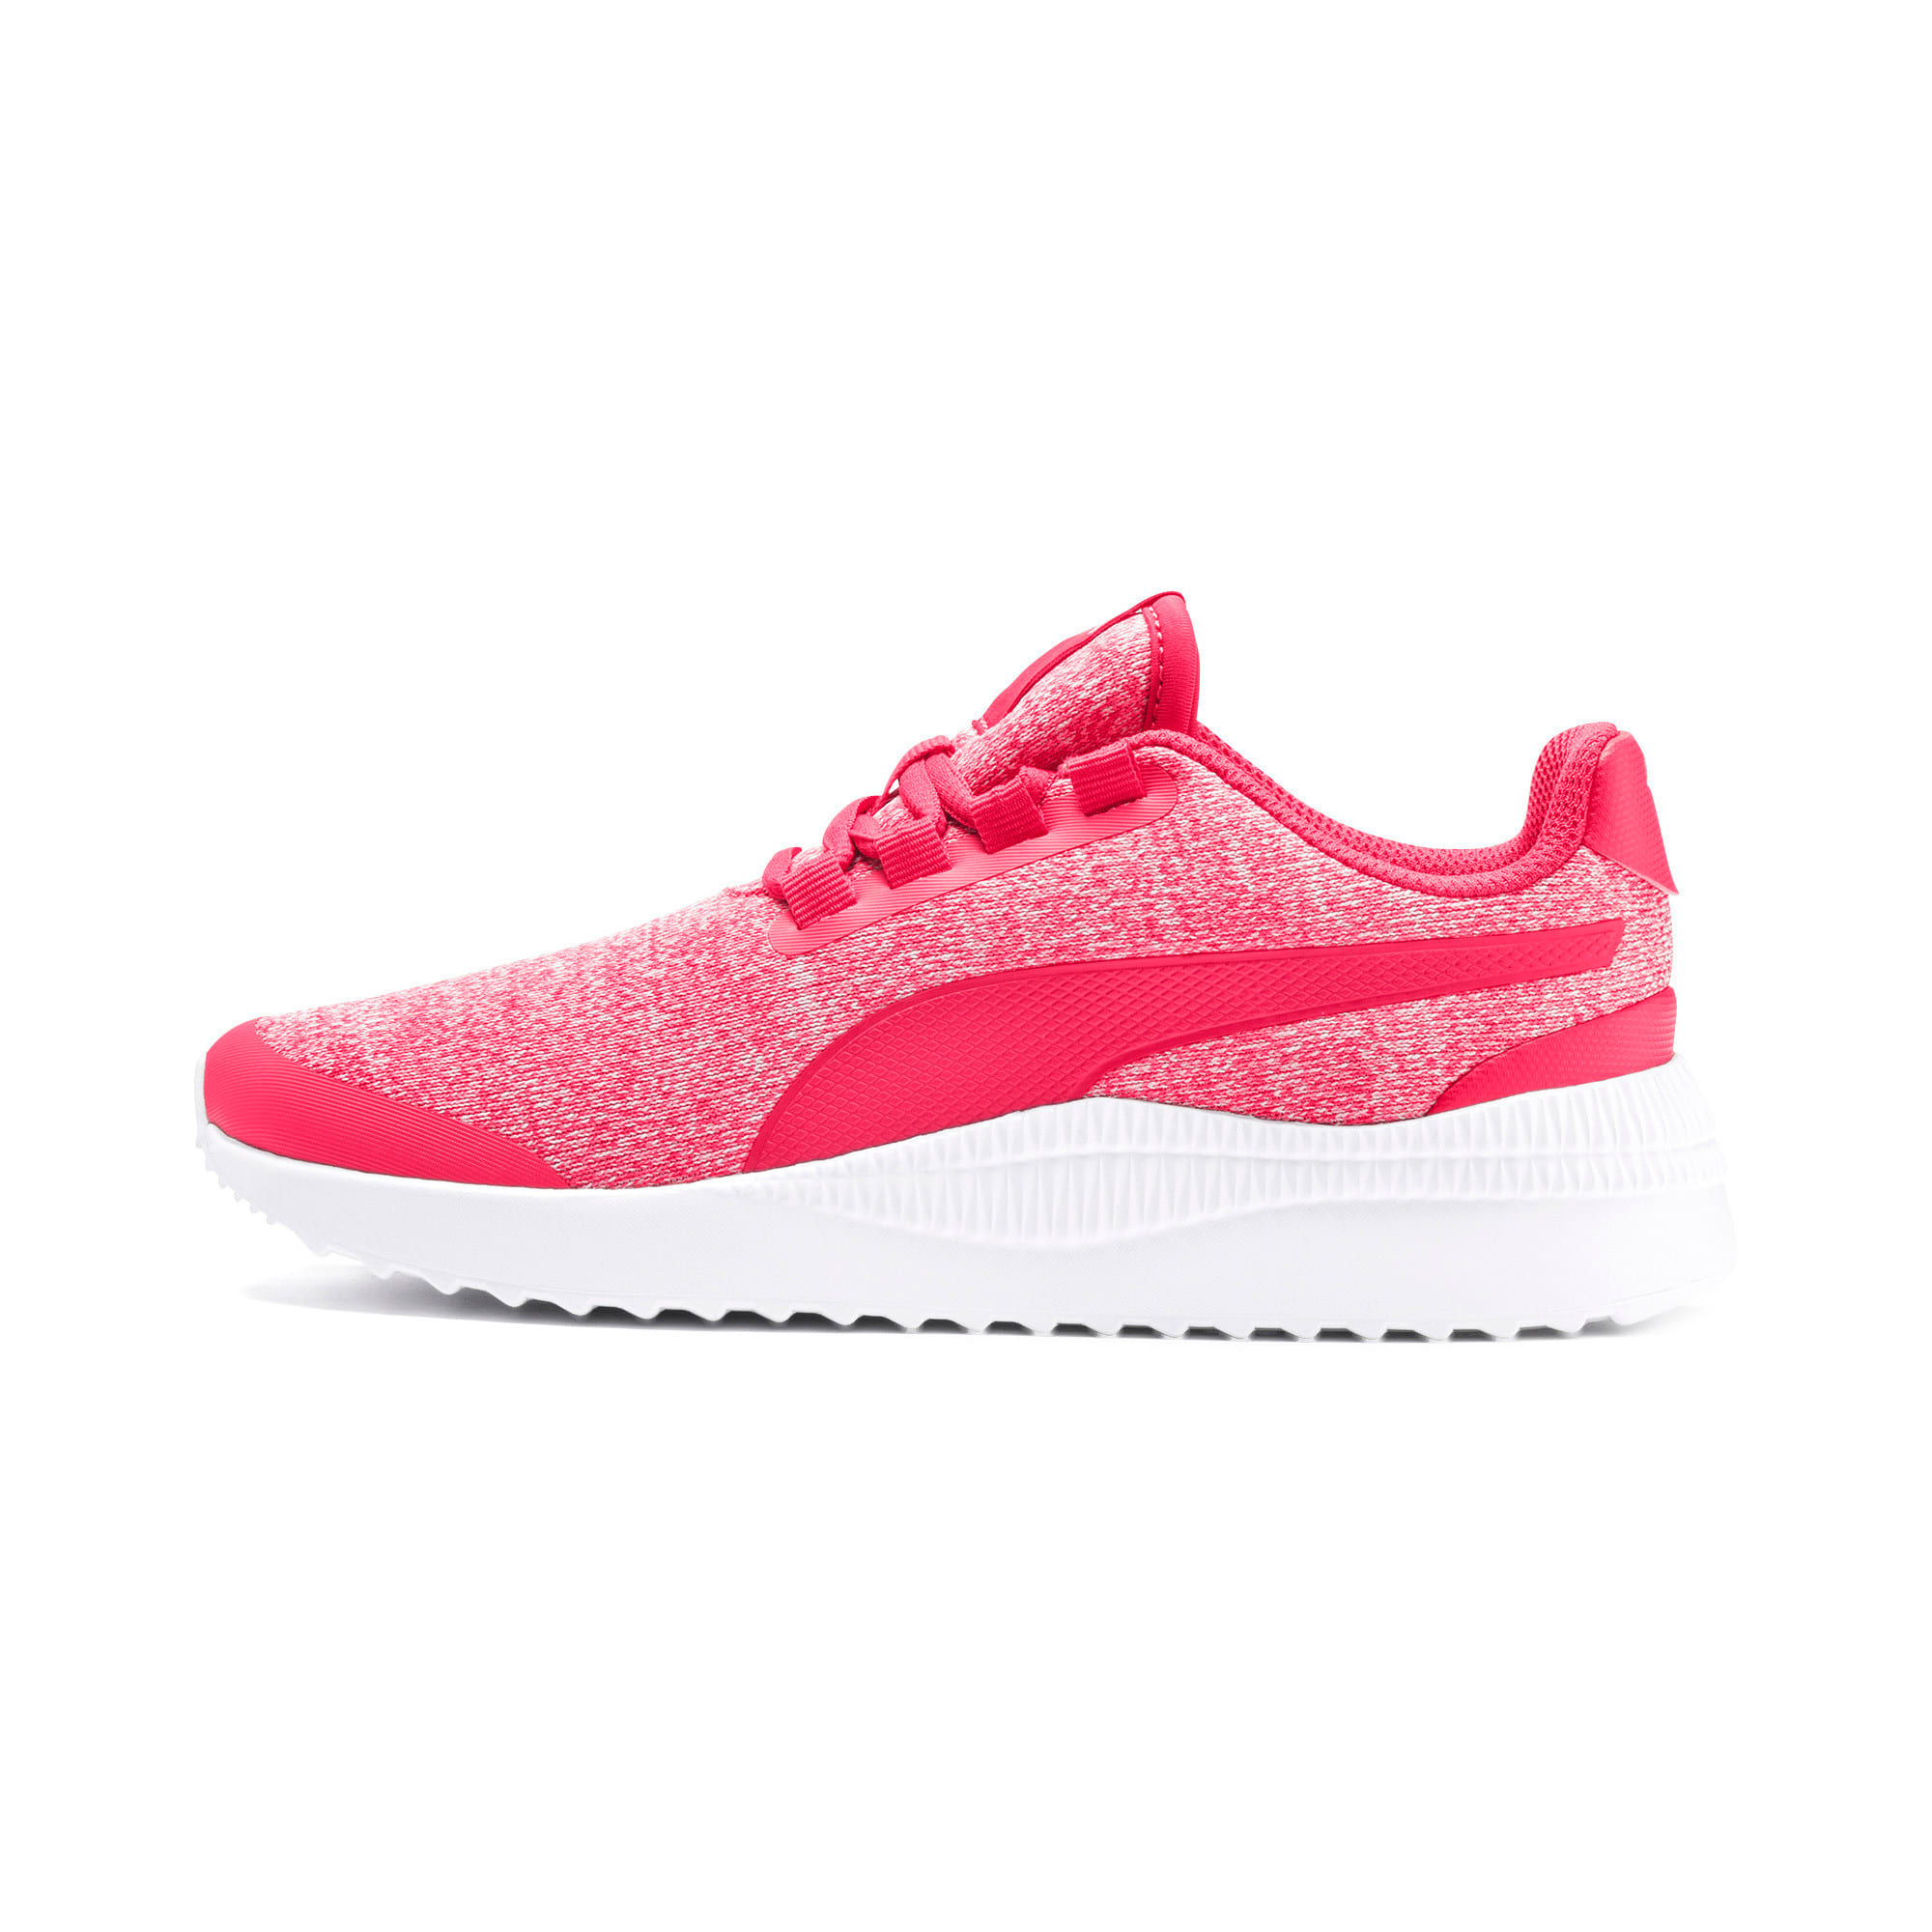 Thumbnail 1 of Pacer Next FS Knit Kinder Sneaker, Nrgy Rose-Puma White, medium